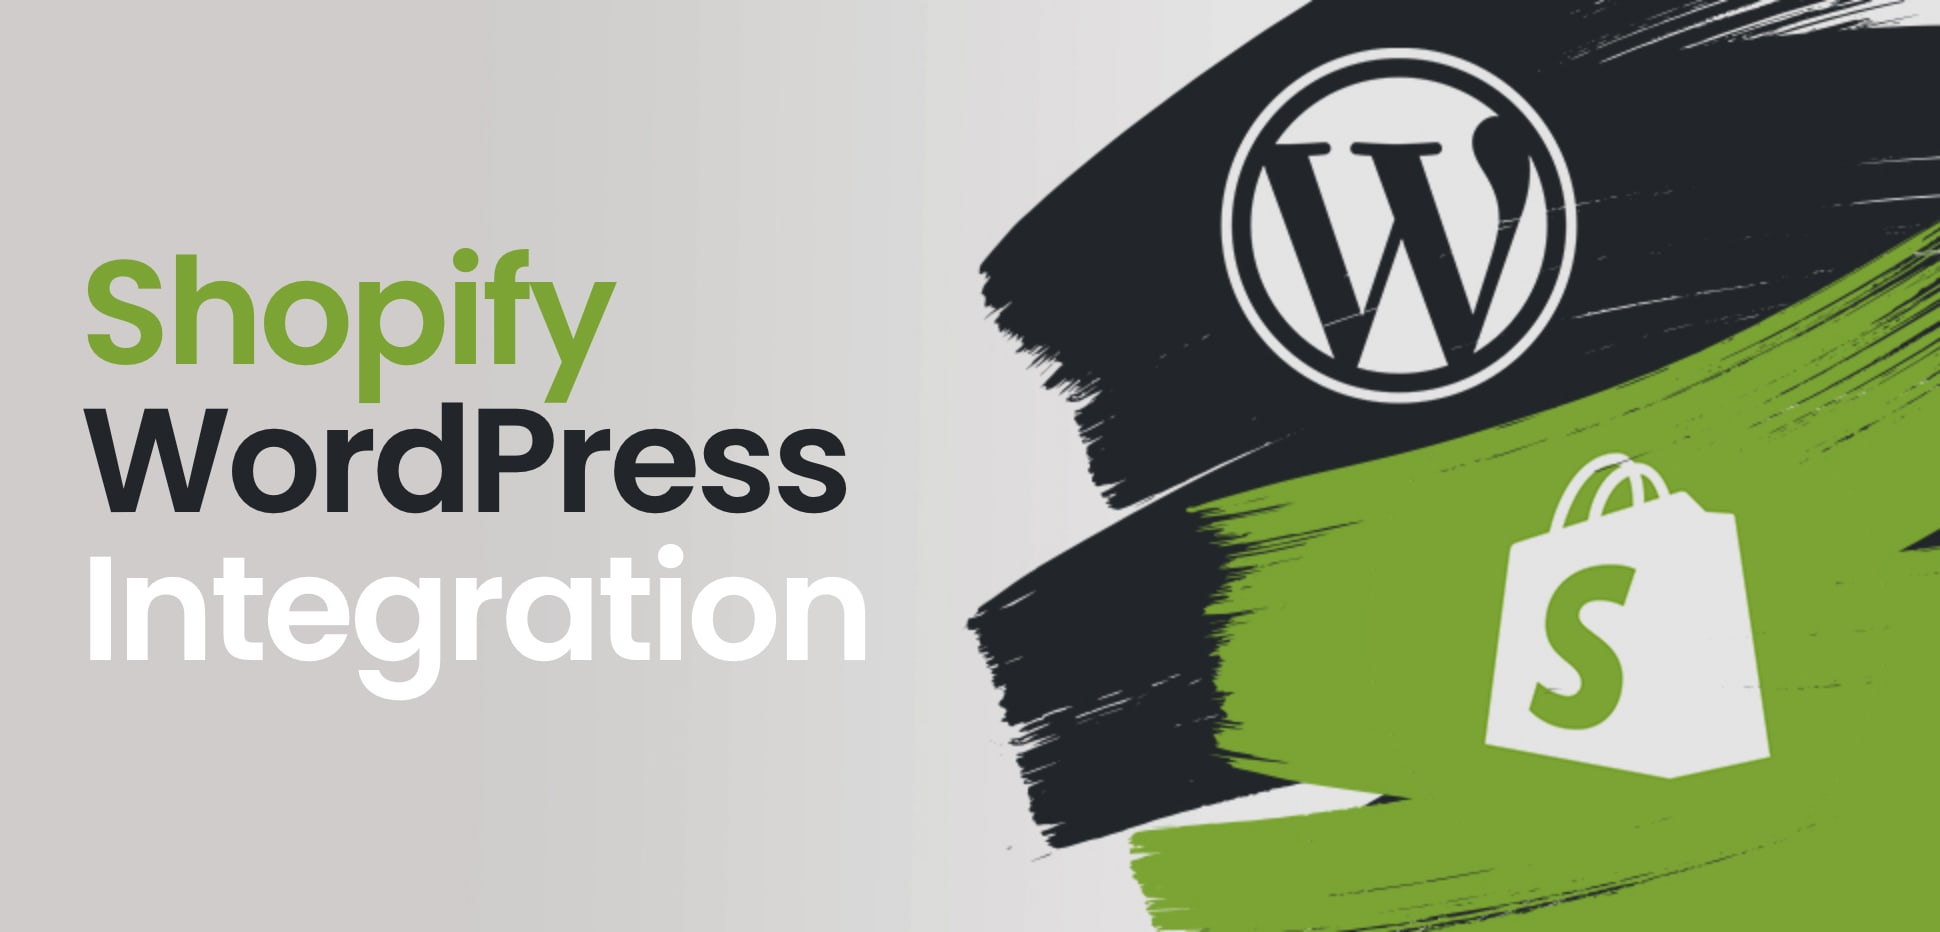 Shopify WordPress Integration: How it Works